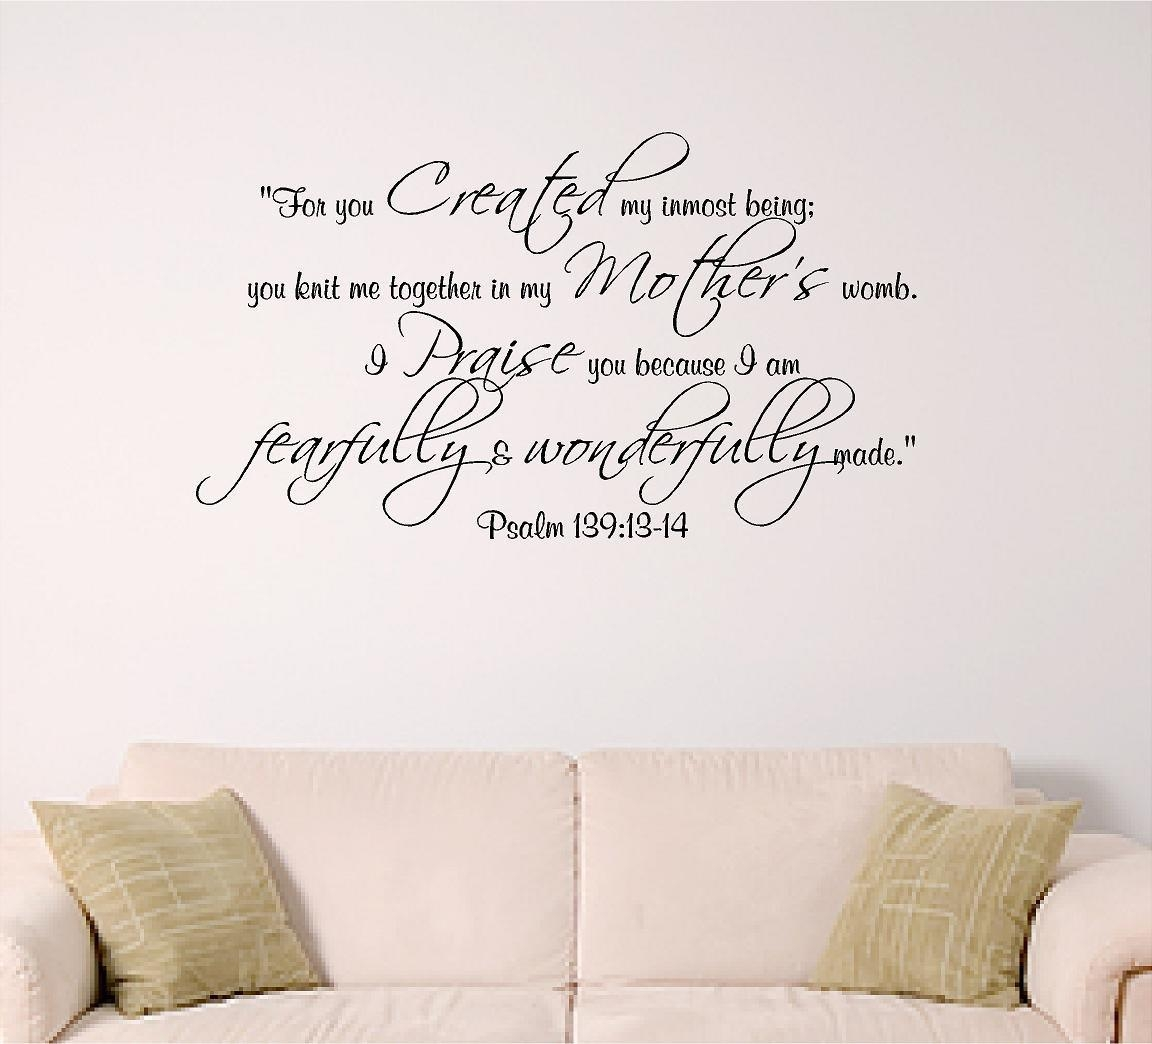 23 Wall Decals Bible Verses Nursery, Christian Bible Verse Vinyl pertaining to Nursery Bible Verses Wall Decals